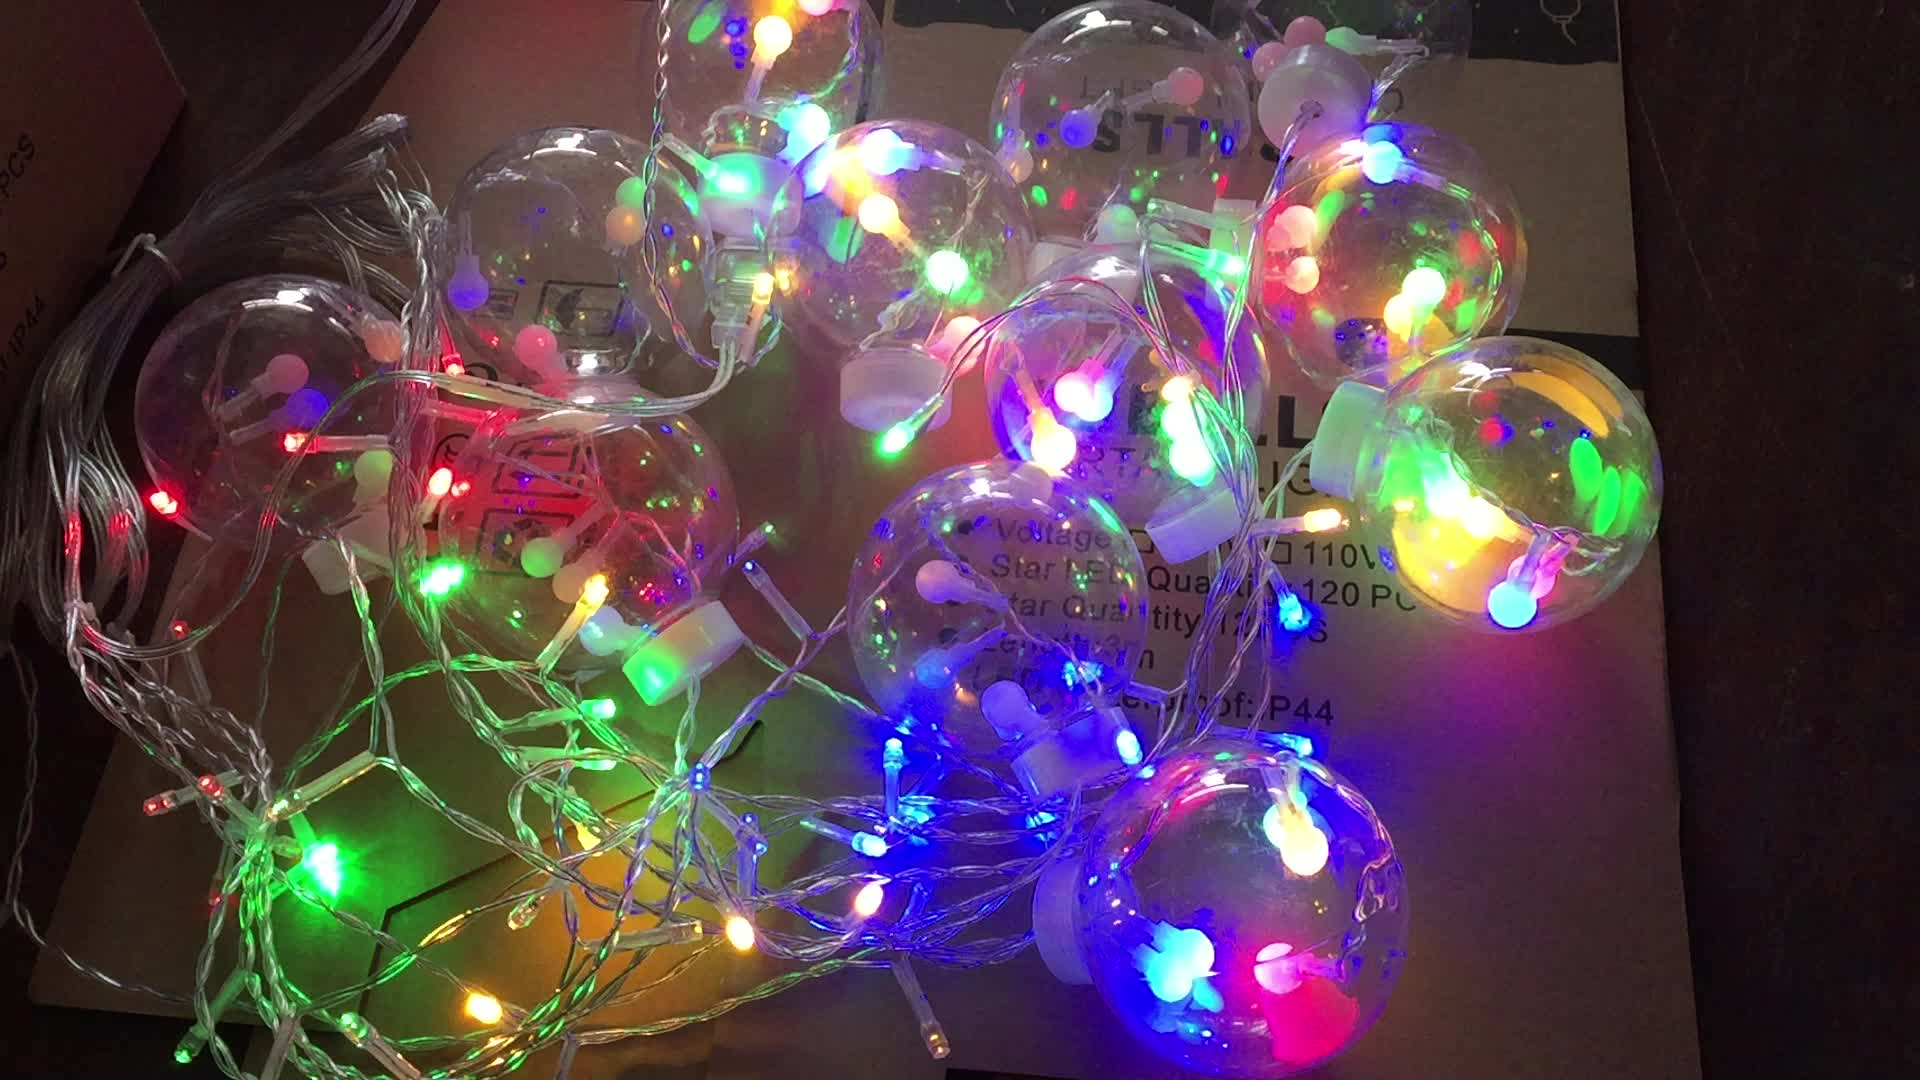 Colorful Christmas.110v 220v Colorful Christmas Decoration Led Fairy Light Bulb 12 Balls Curtain Light 120l Star Light With 8 Functions Buy Diy Decoration Light Led